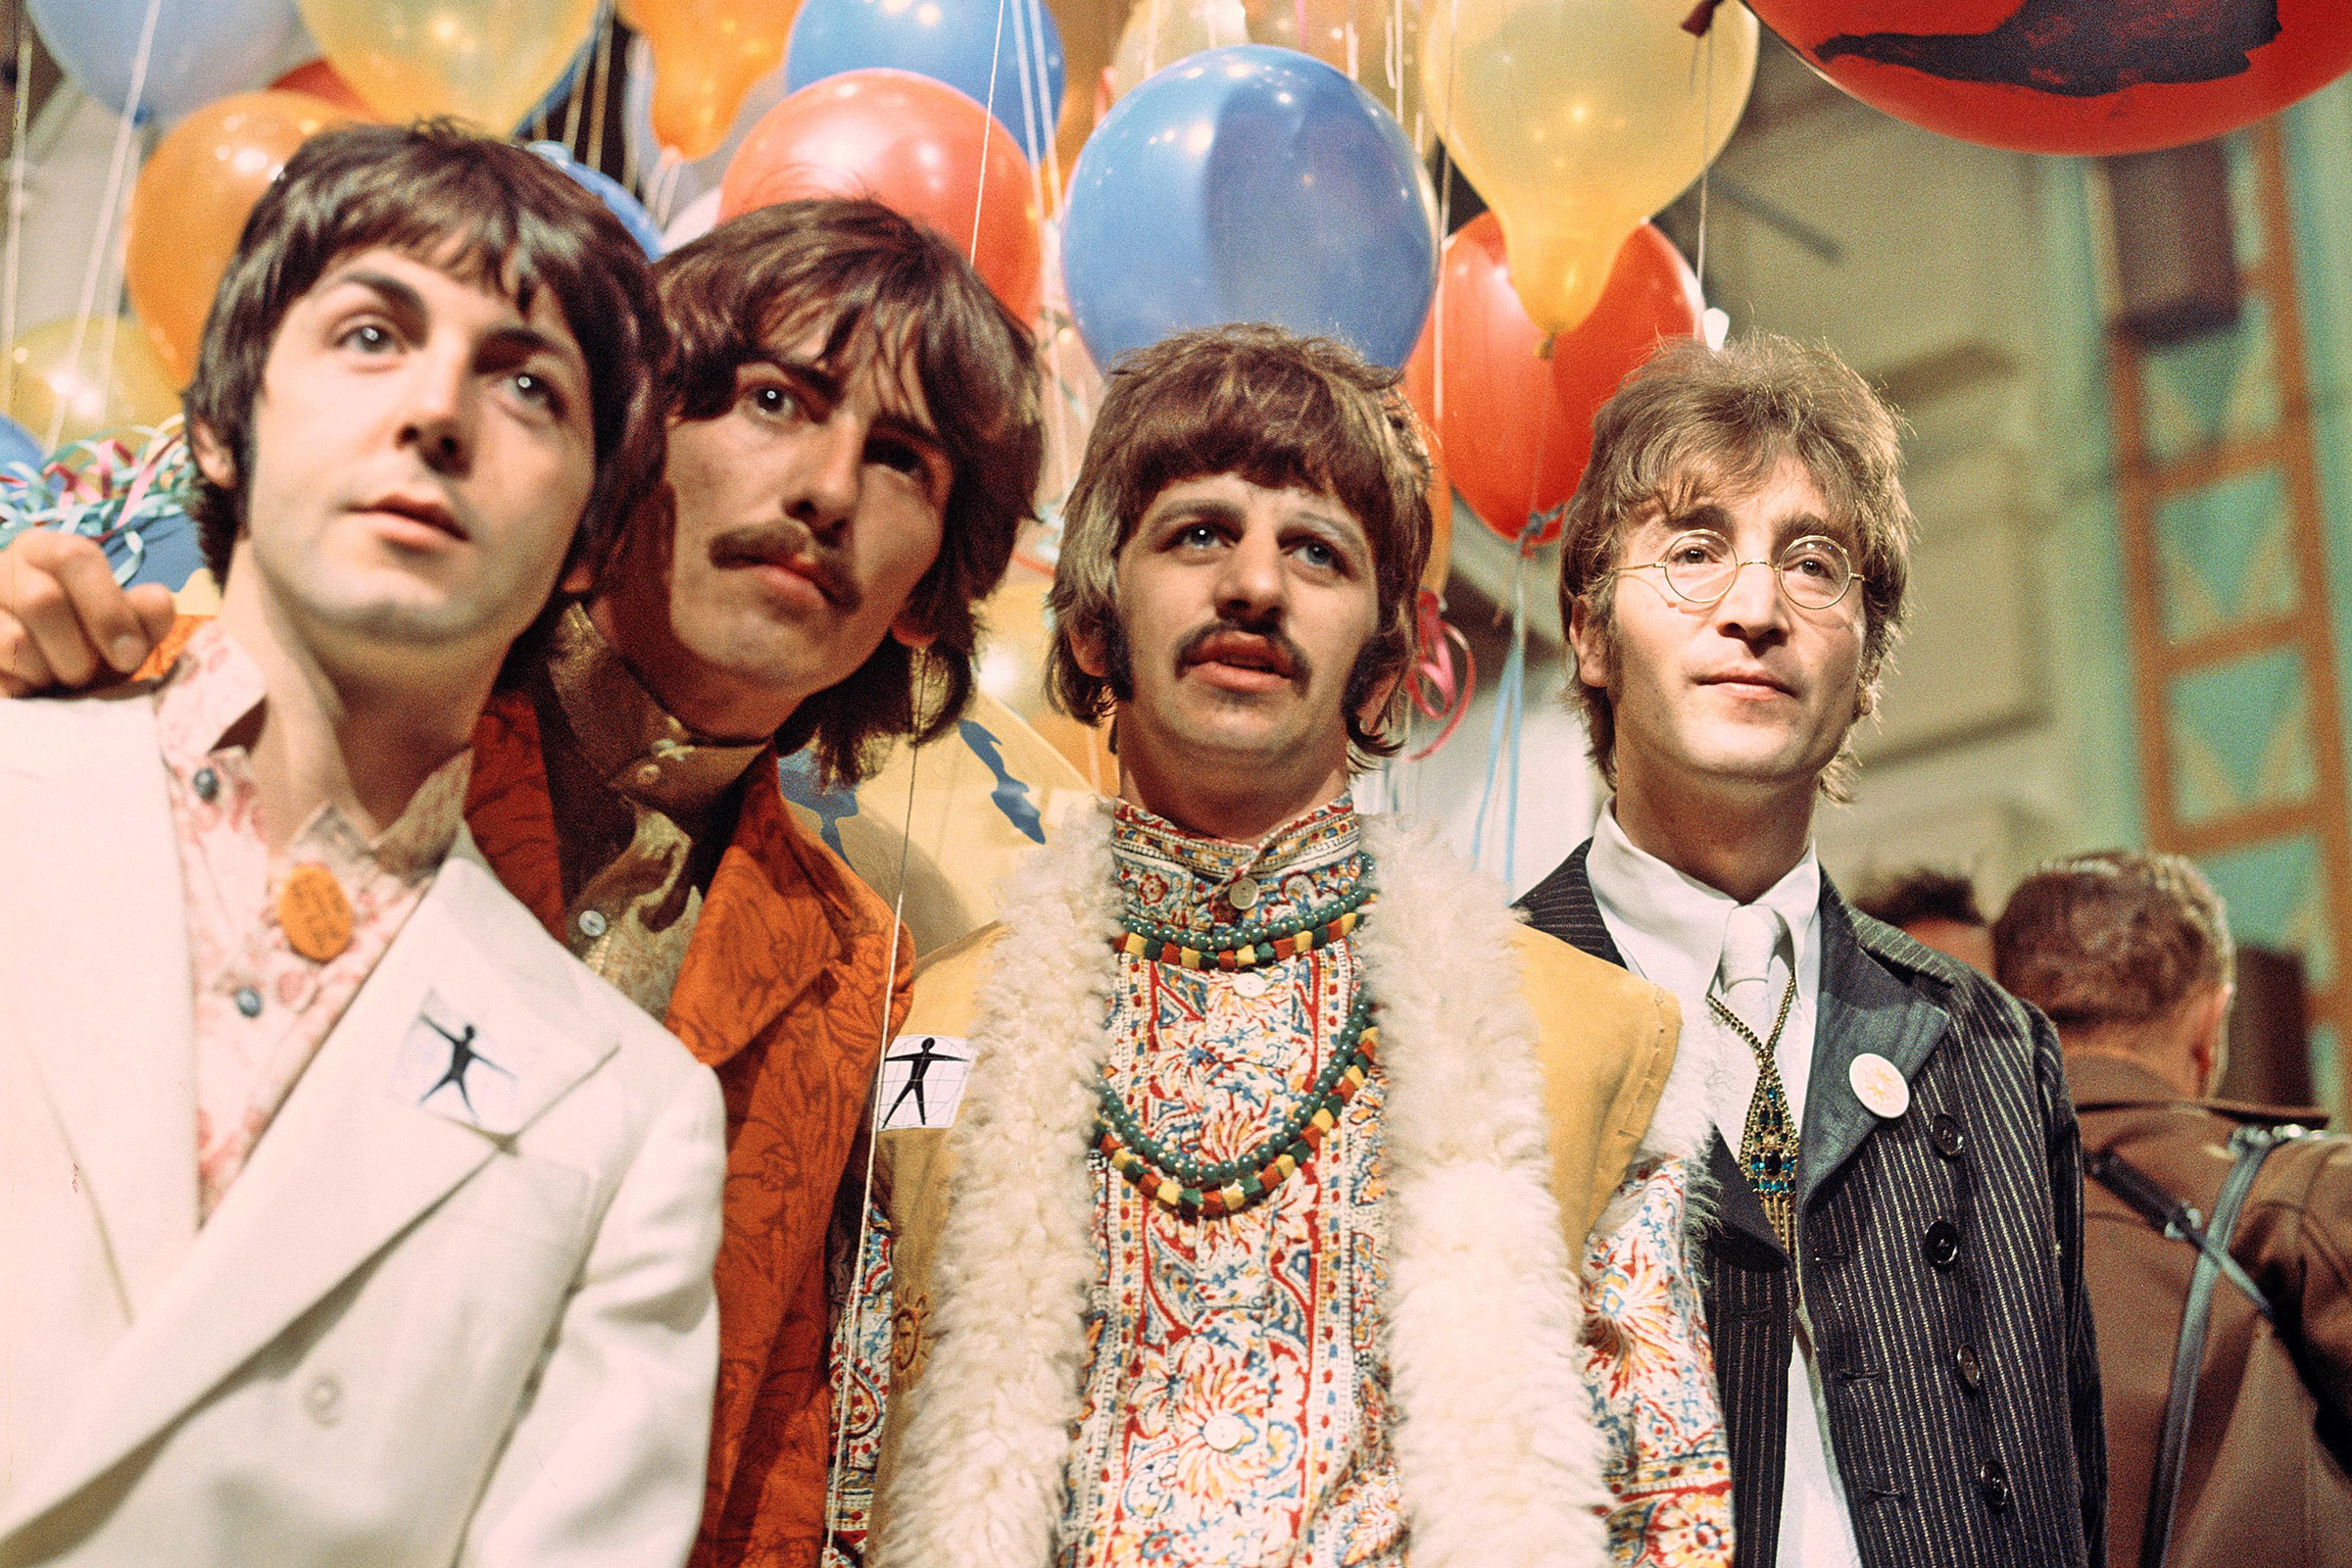 Yesterday: 10 Other Great Beatles Songs That Have Been